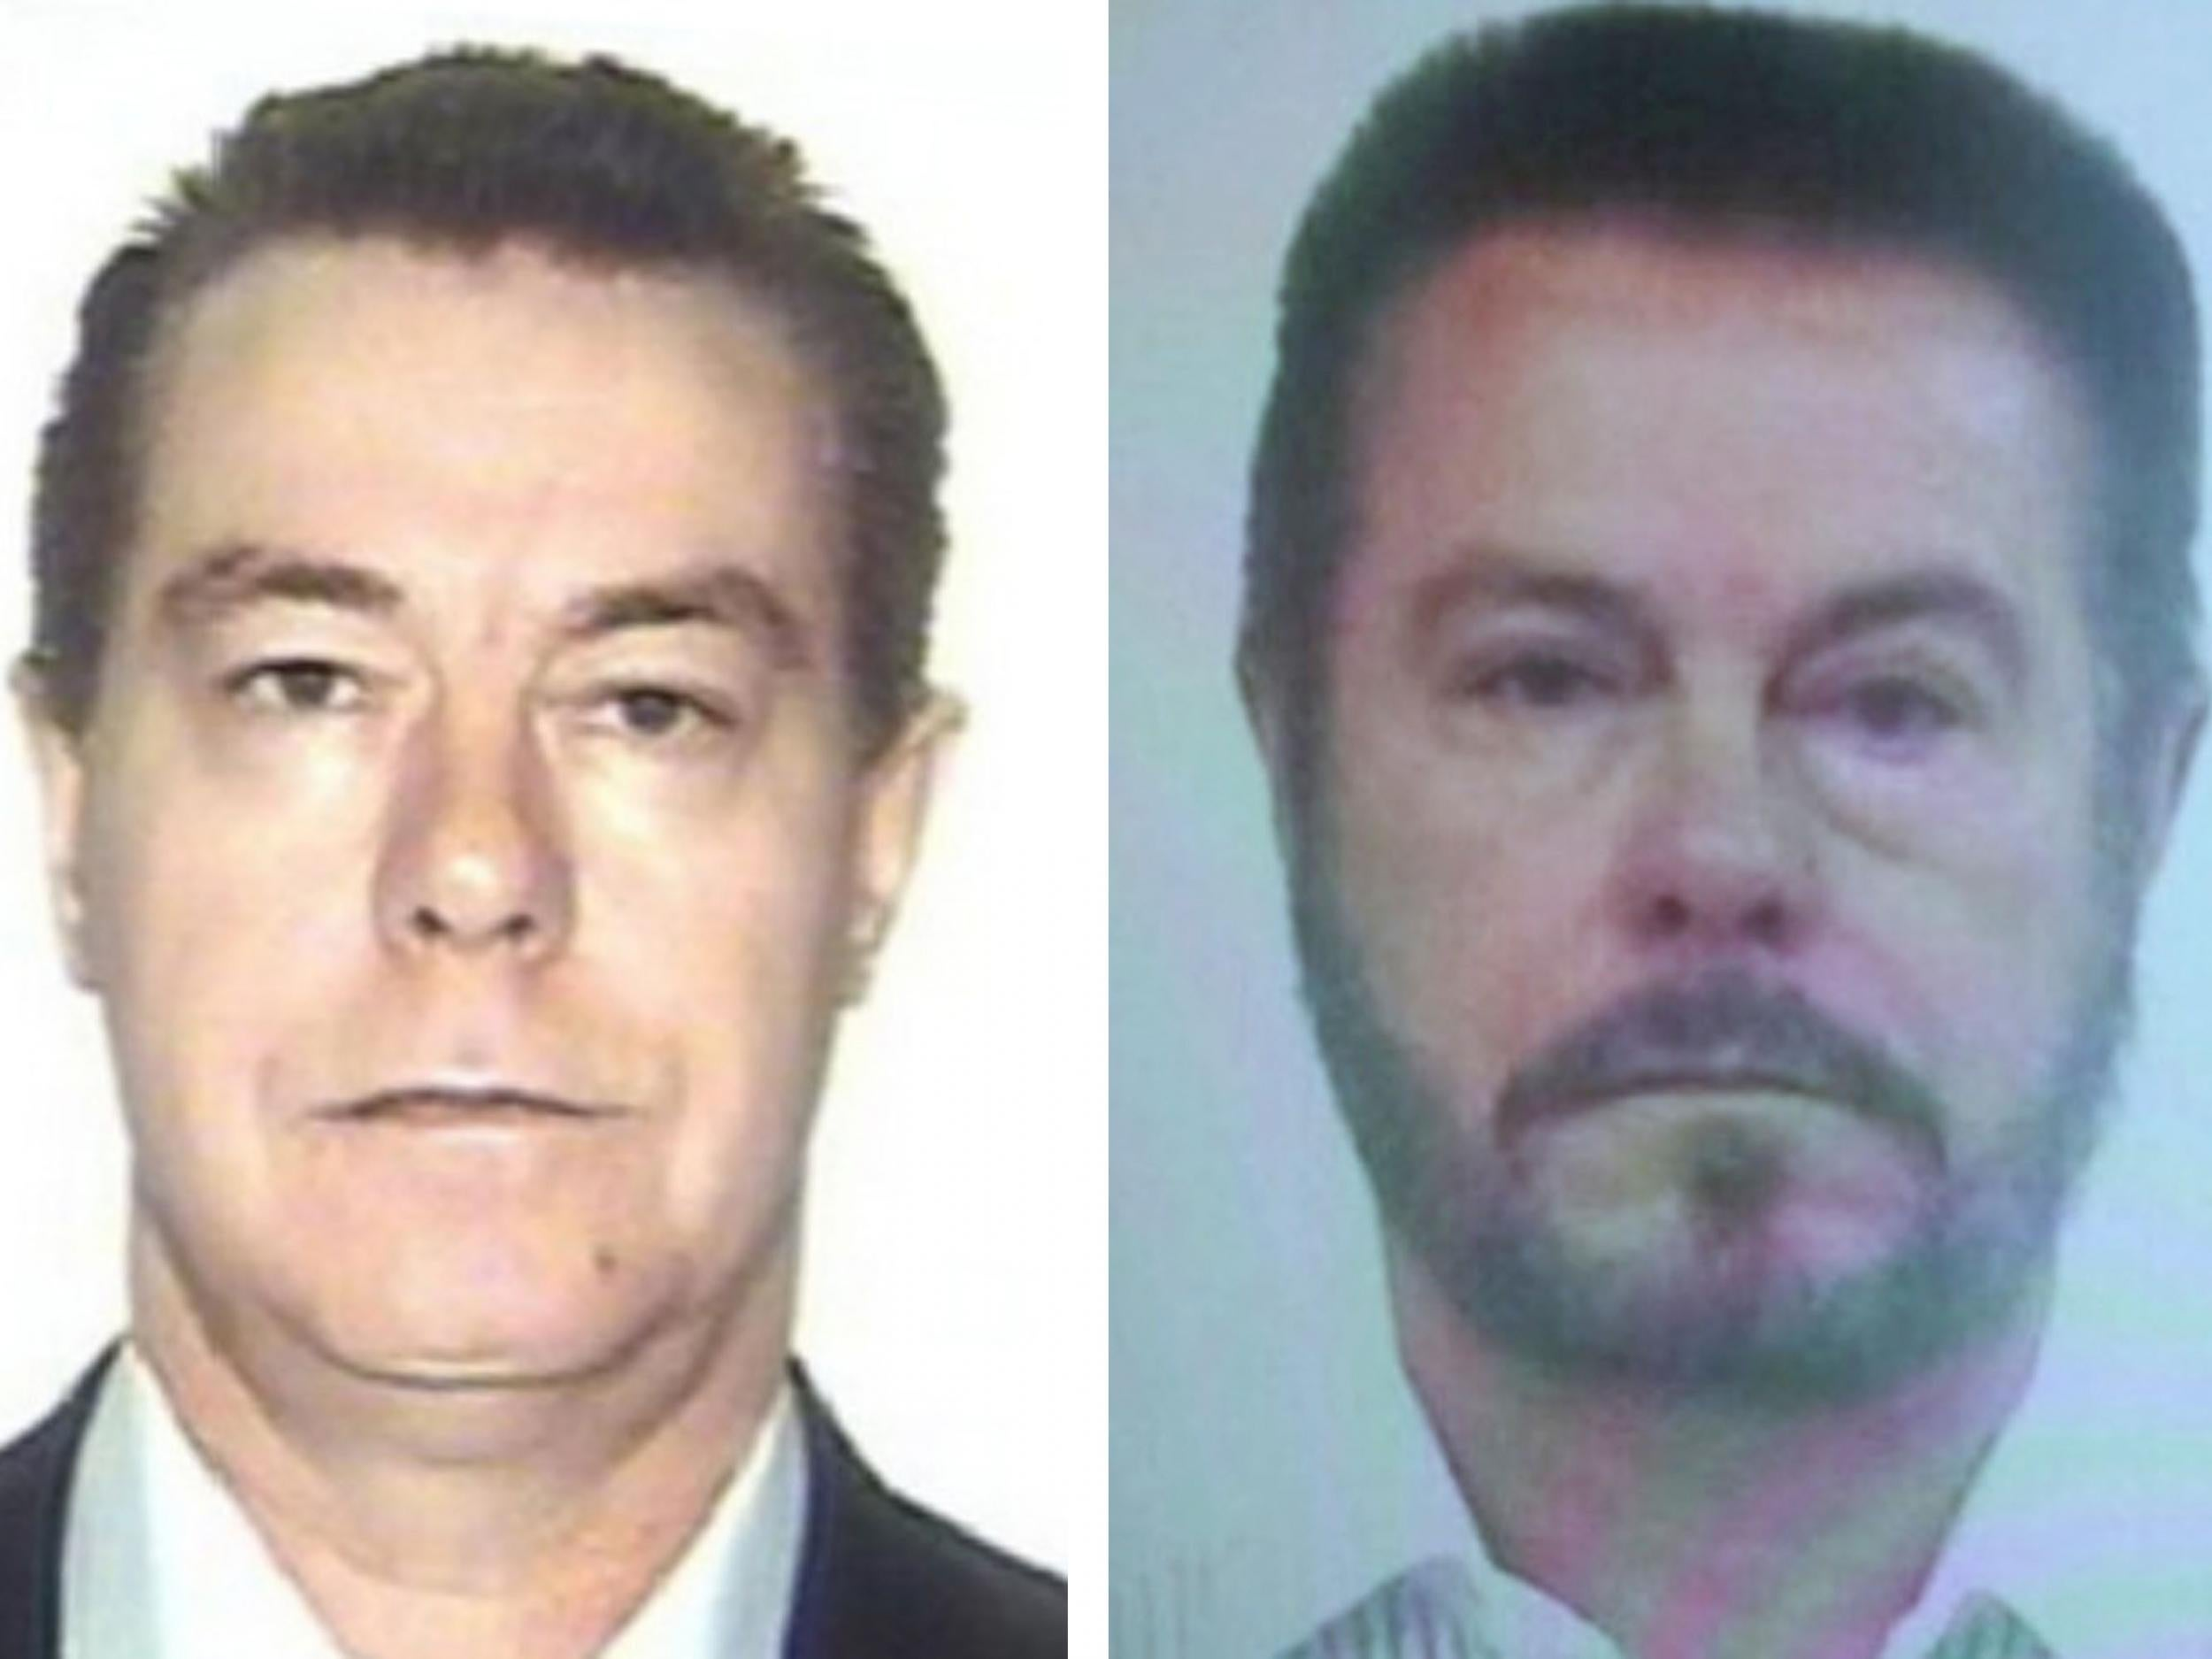 Drug cartel boss used facial plastic surgery to avoid police for 30 years before being arrested in Brazil